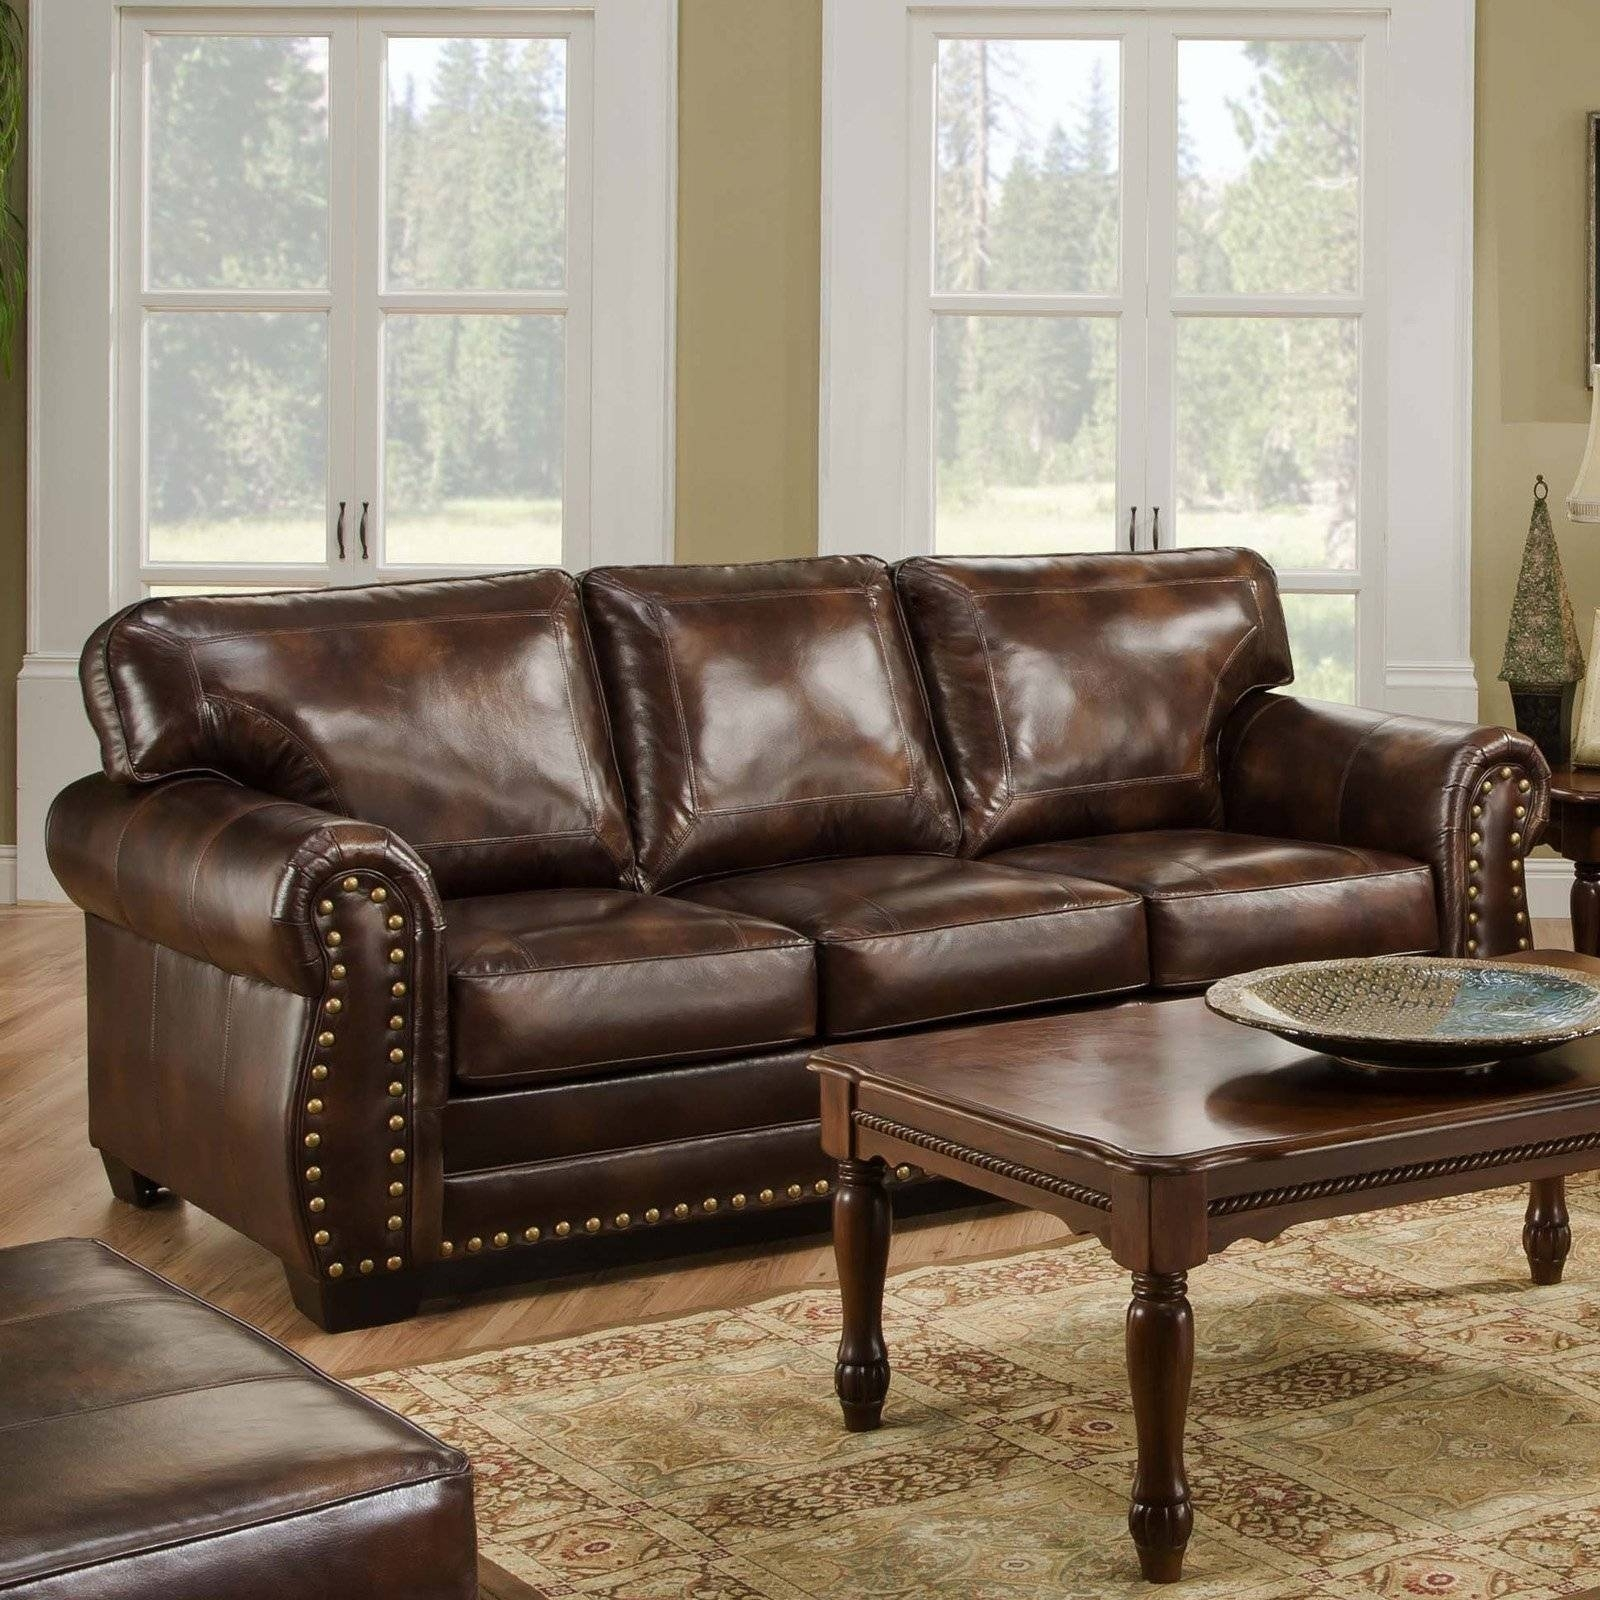 High Quality Nailhead Leather Couch